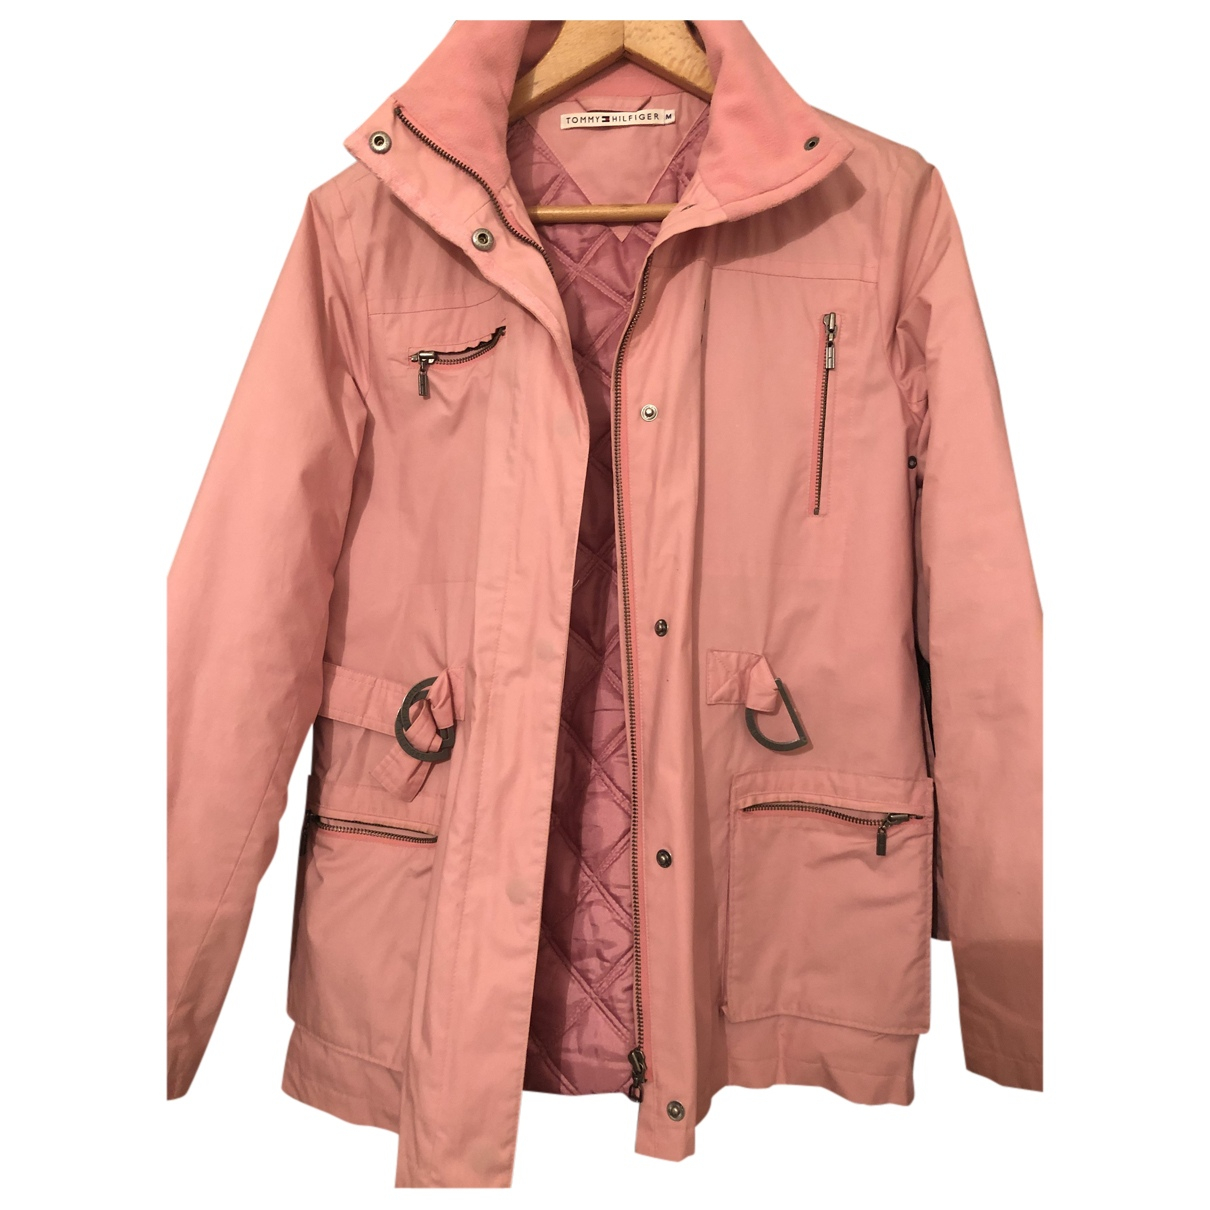 Tommy Hilfiger N Pink Trench coat for Women M International